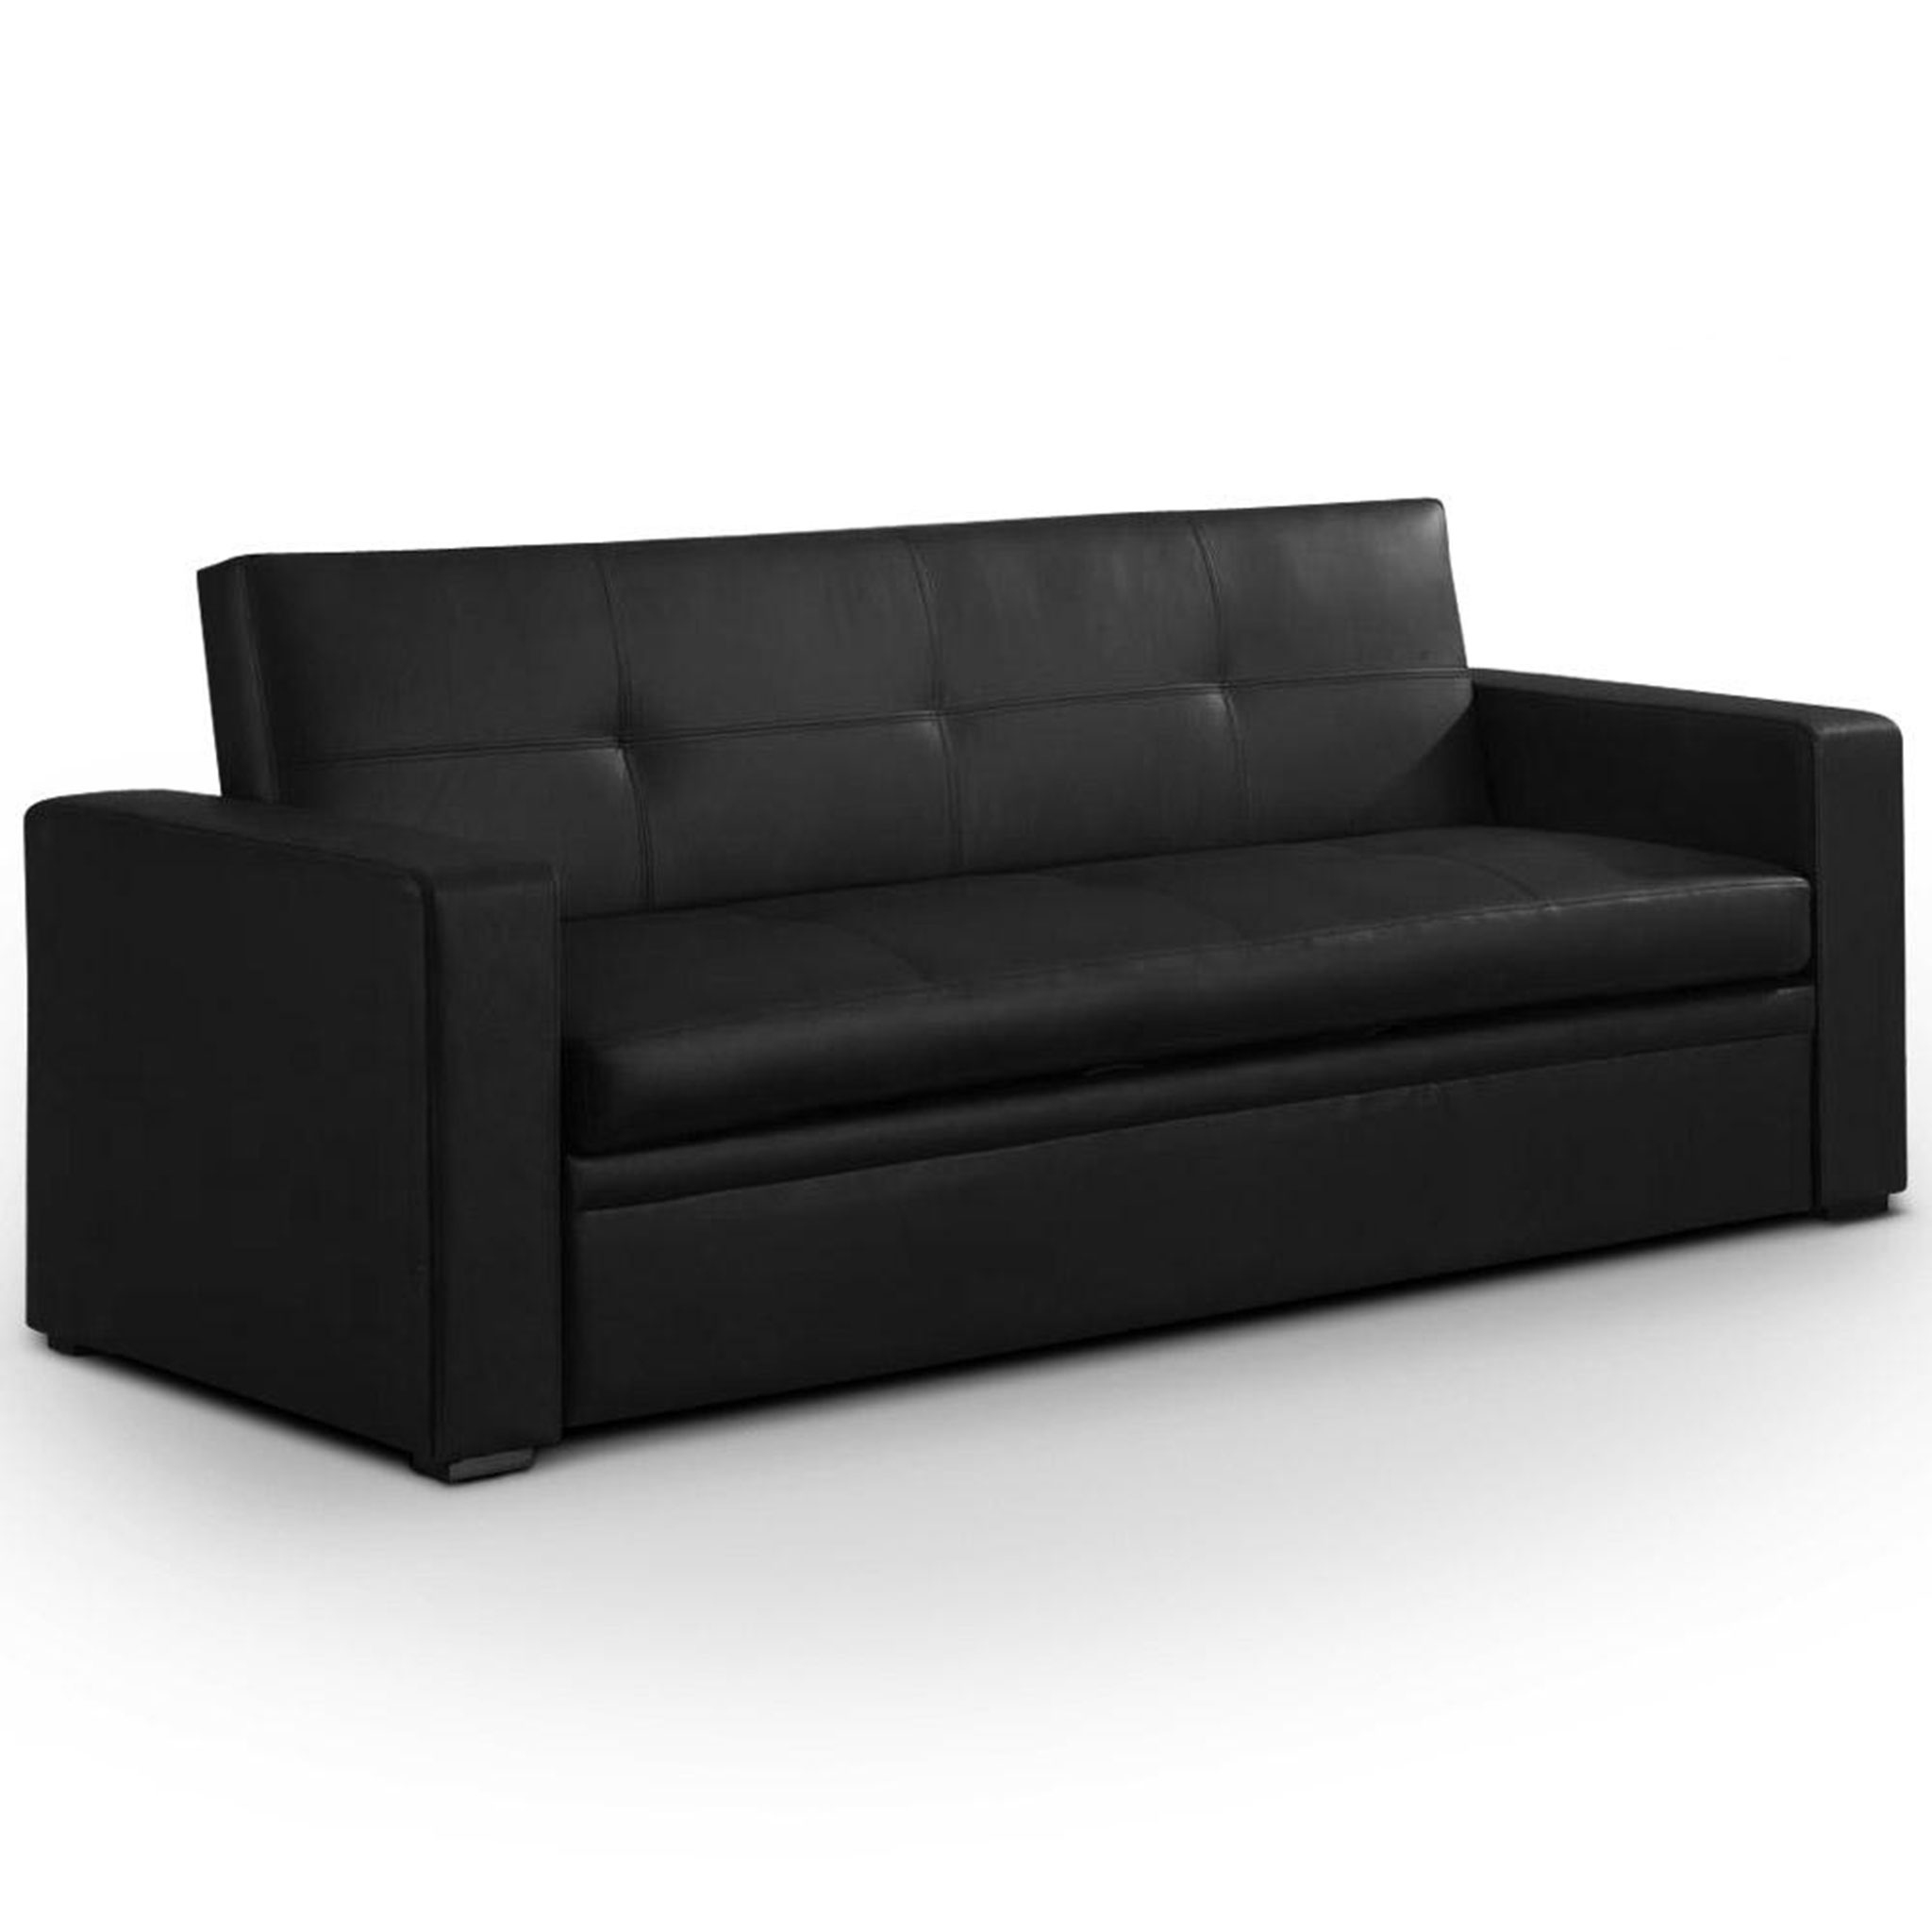 Canapé Rapido Ikea Luxe Collection Canap Convertible 3 Places Conforama 33 Canape Marina Luxe Lit 28